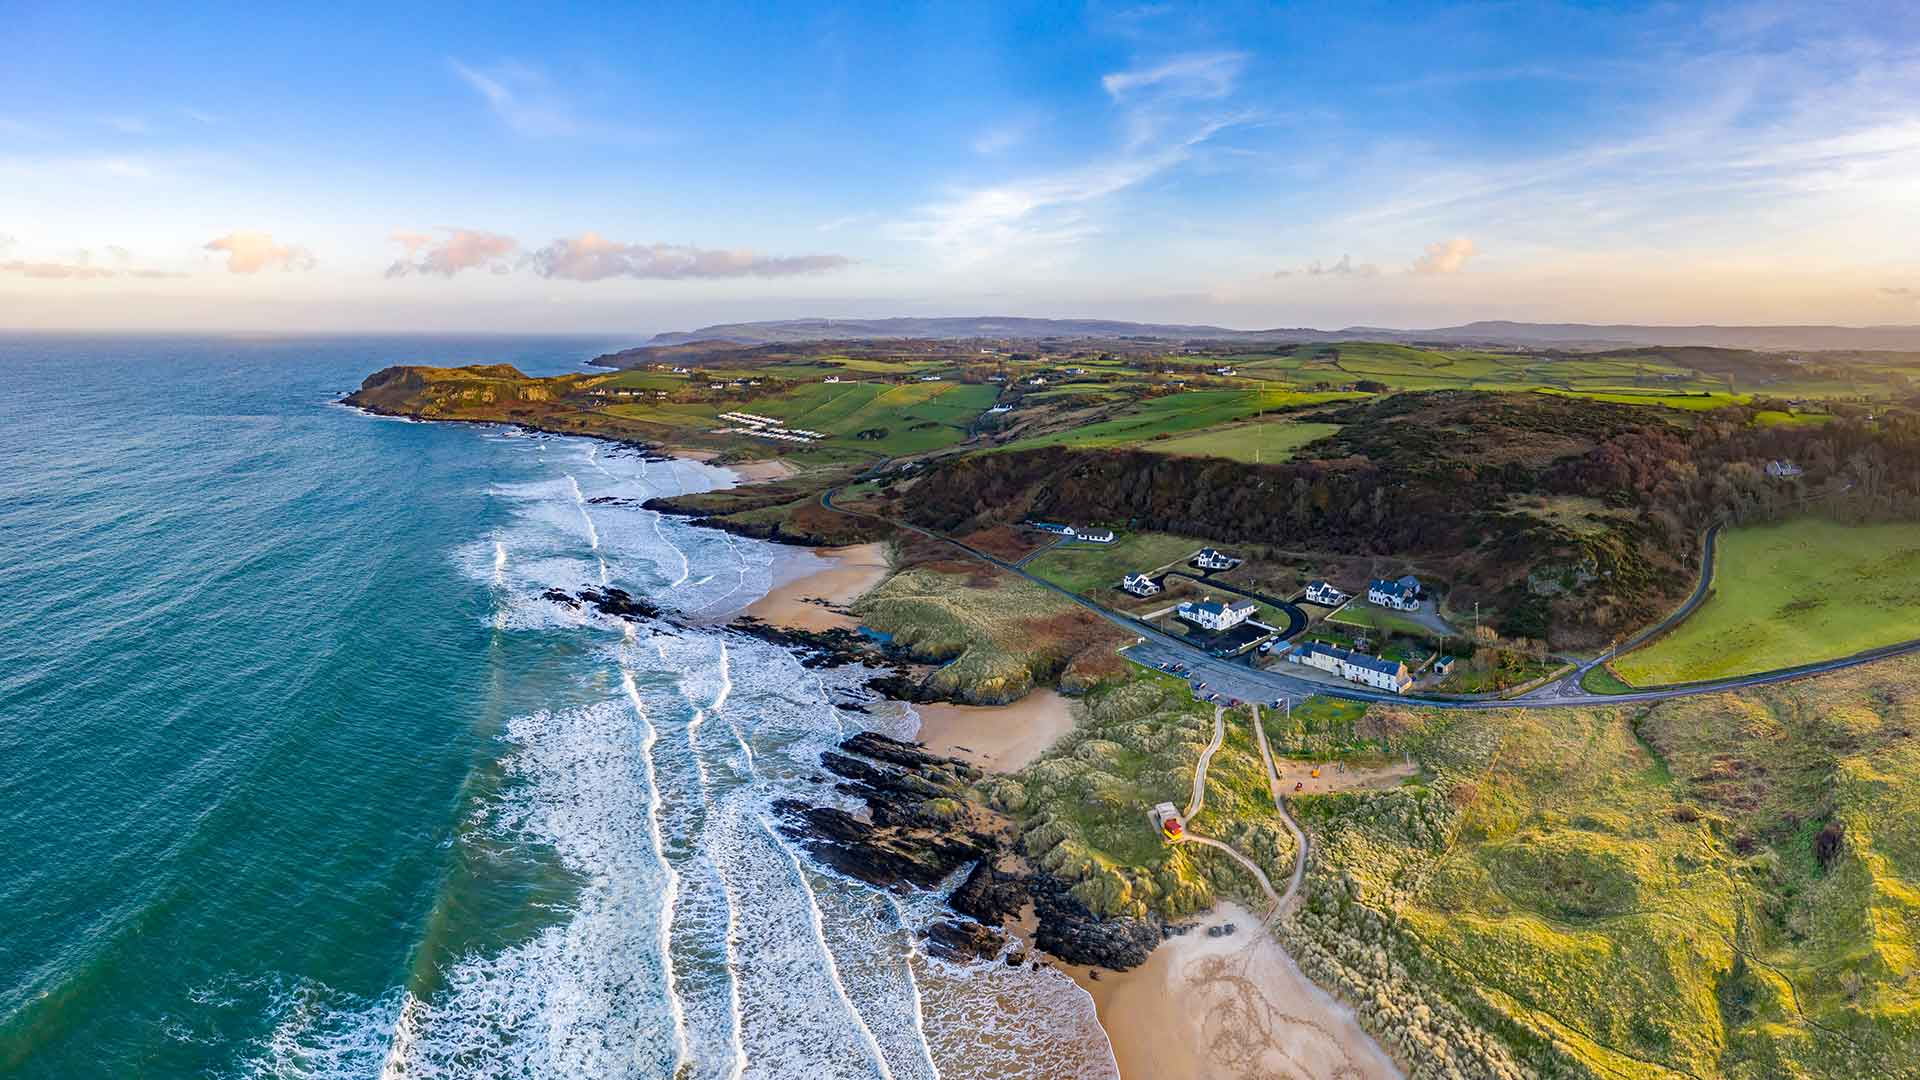 Donegal a great tech location and a great place to live and work remotely